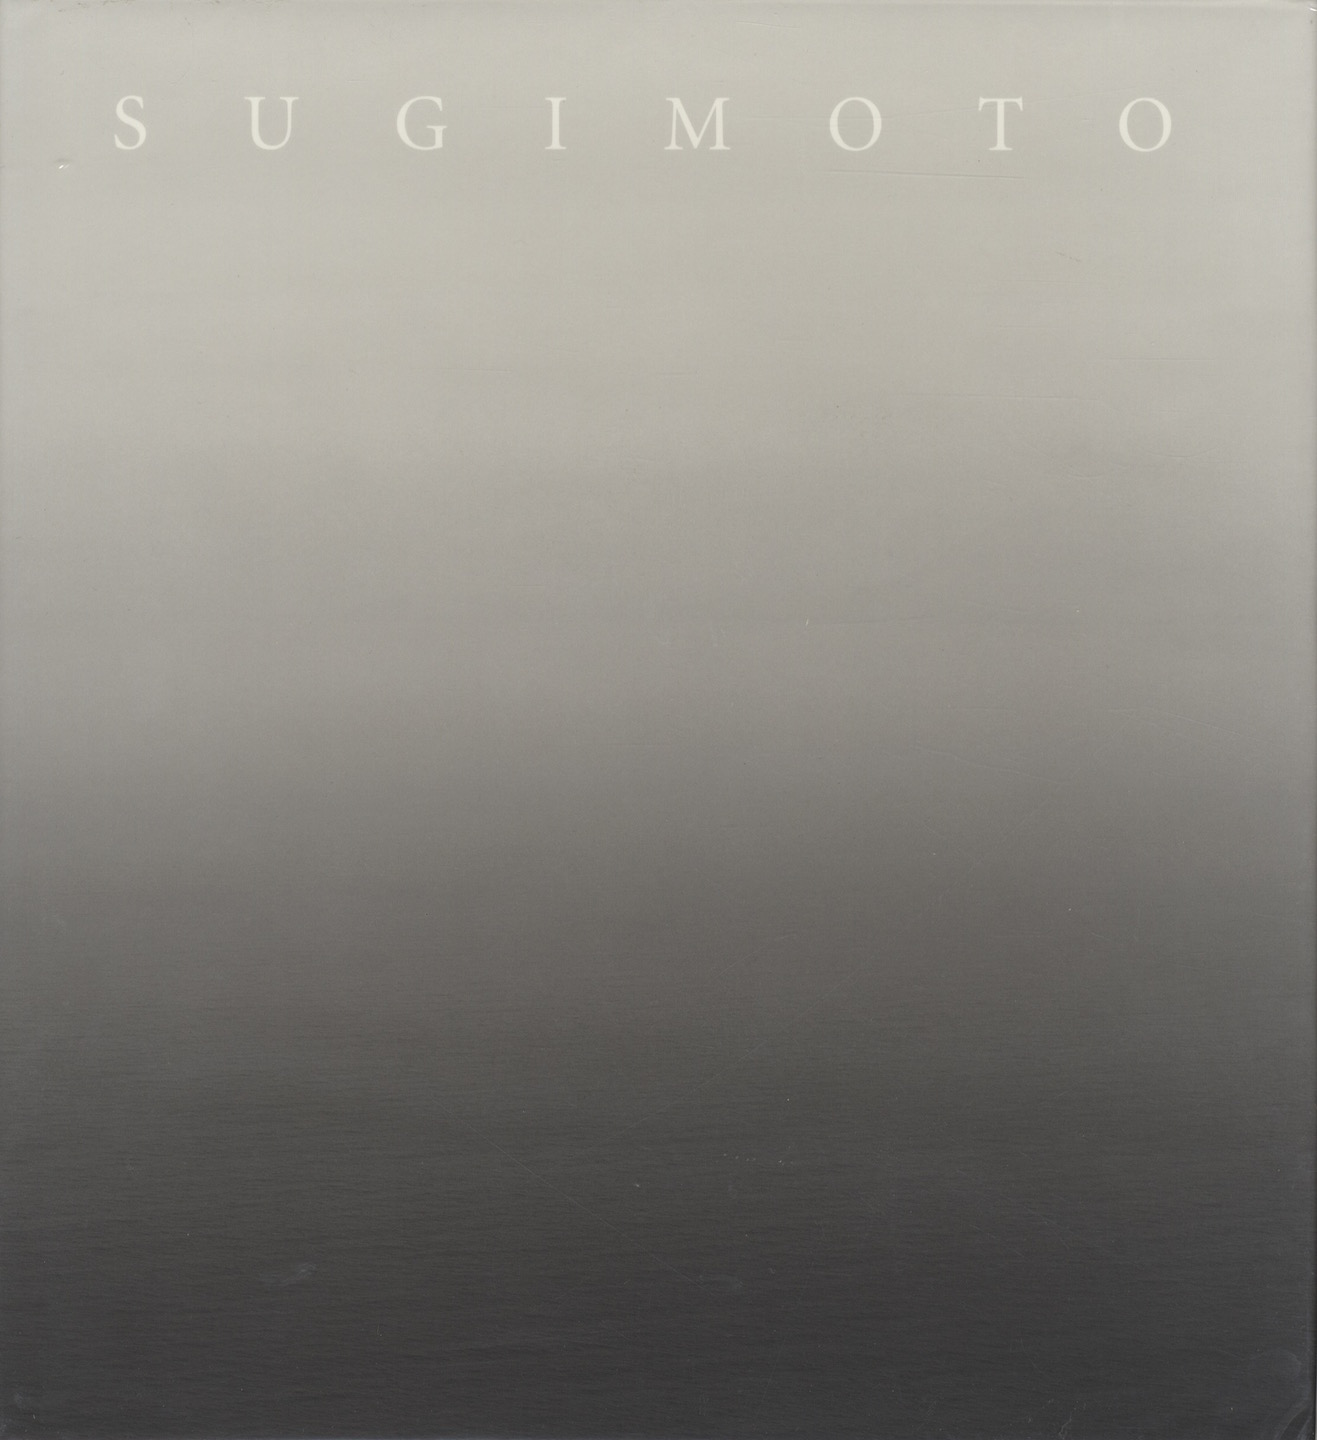 Sugimoto (Contemporary Arts Museum, Houston and Hara Museum)